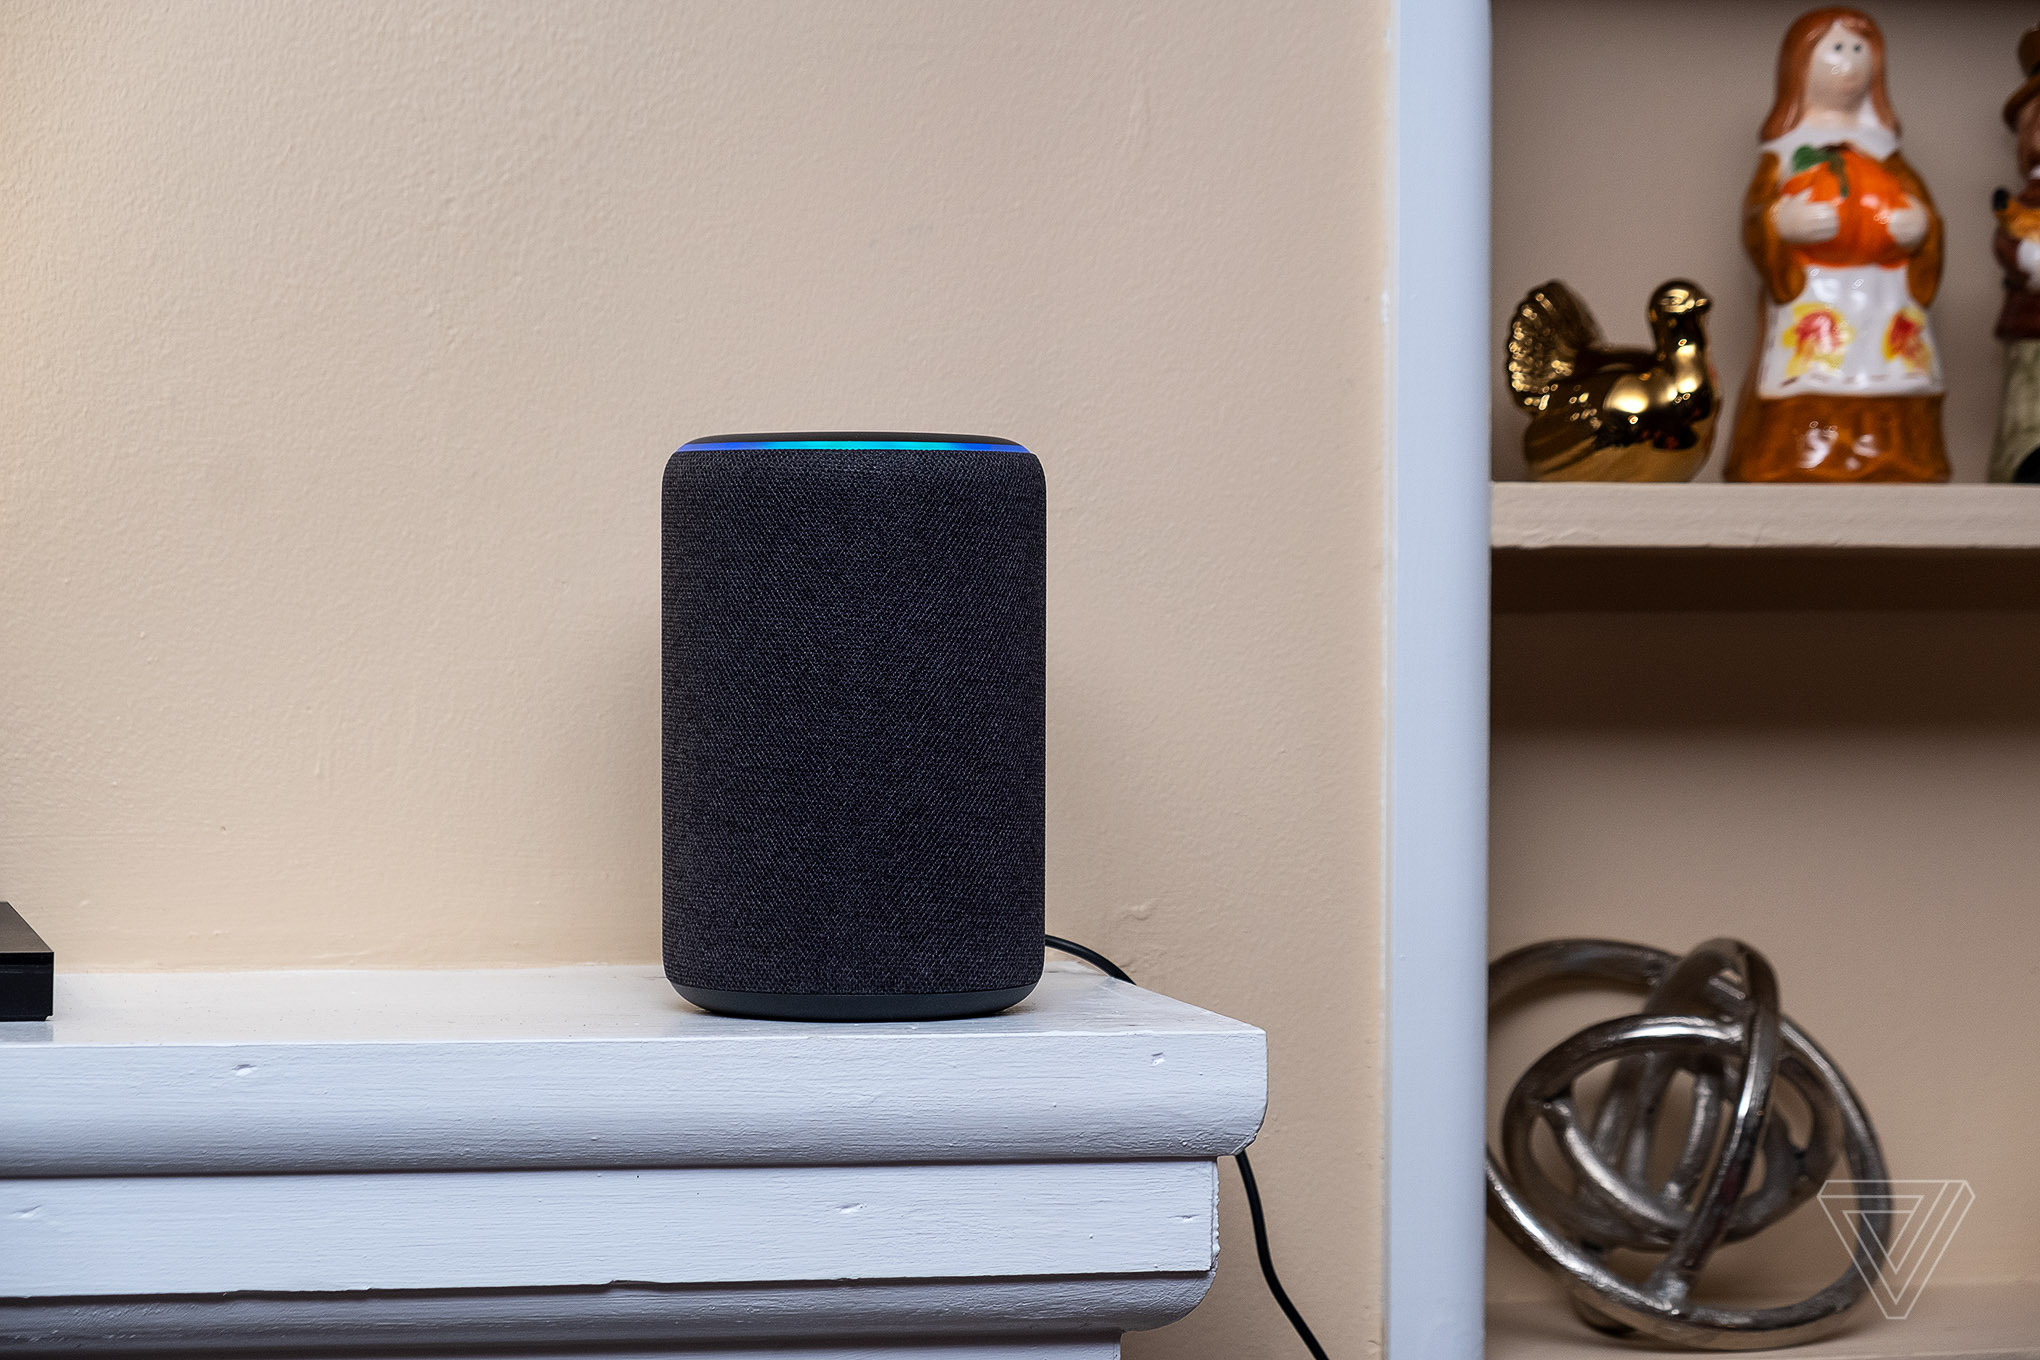 Alexa's new Song ID feature will tell you what song is playing